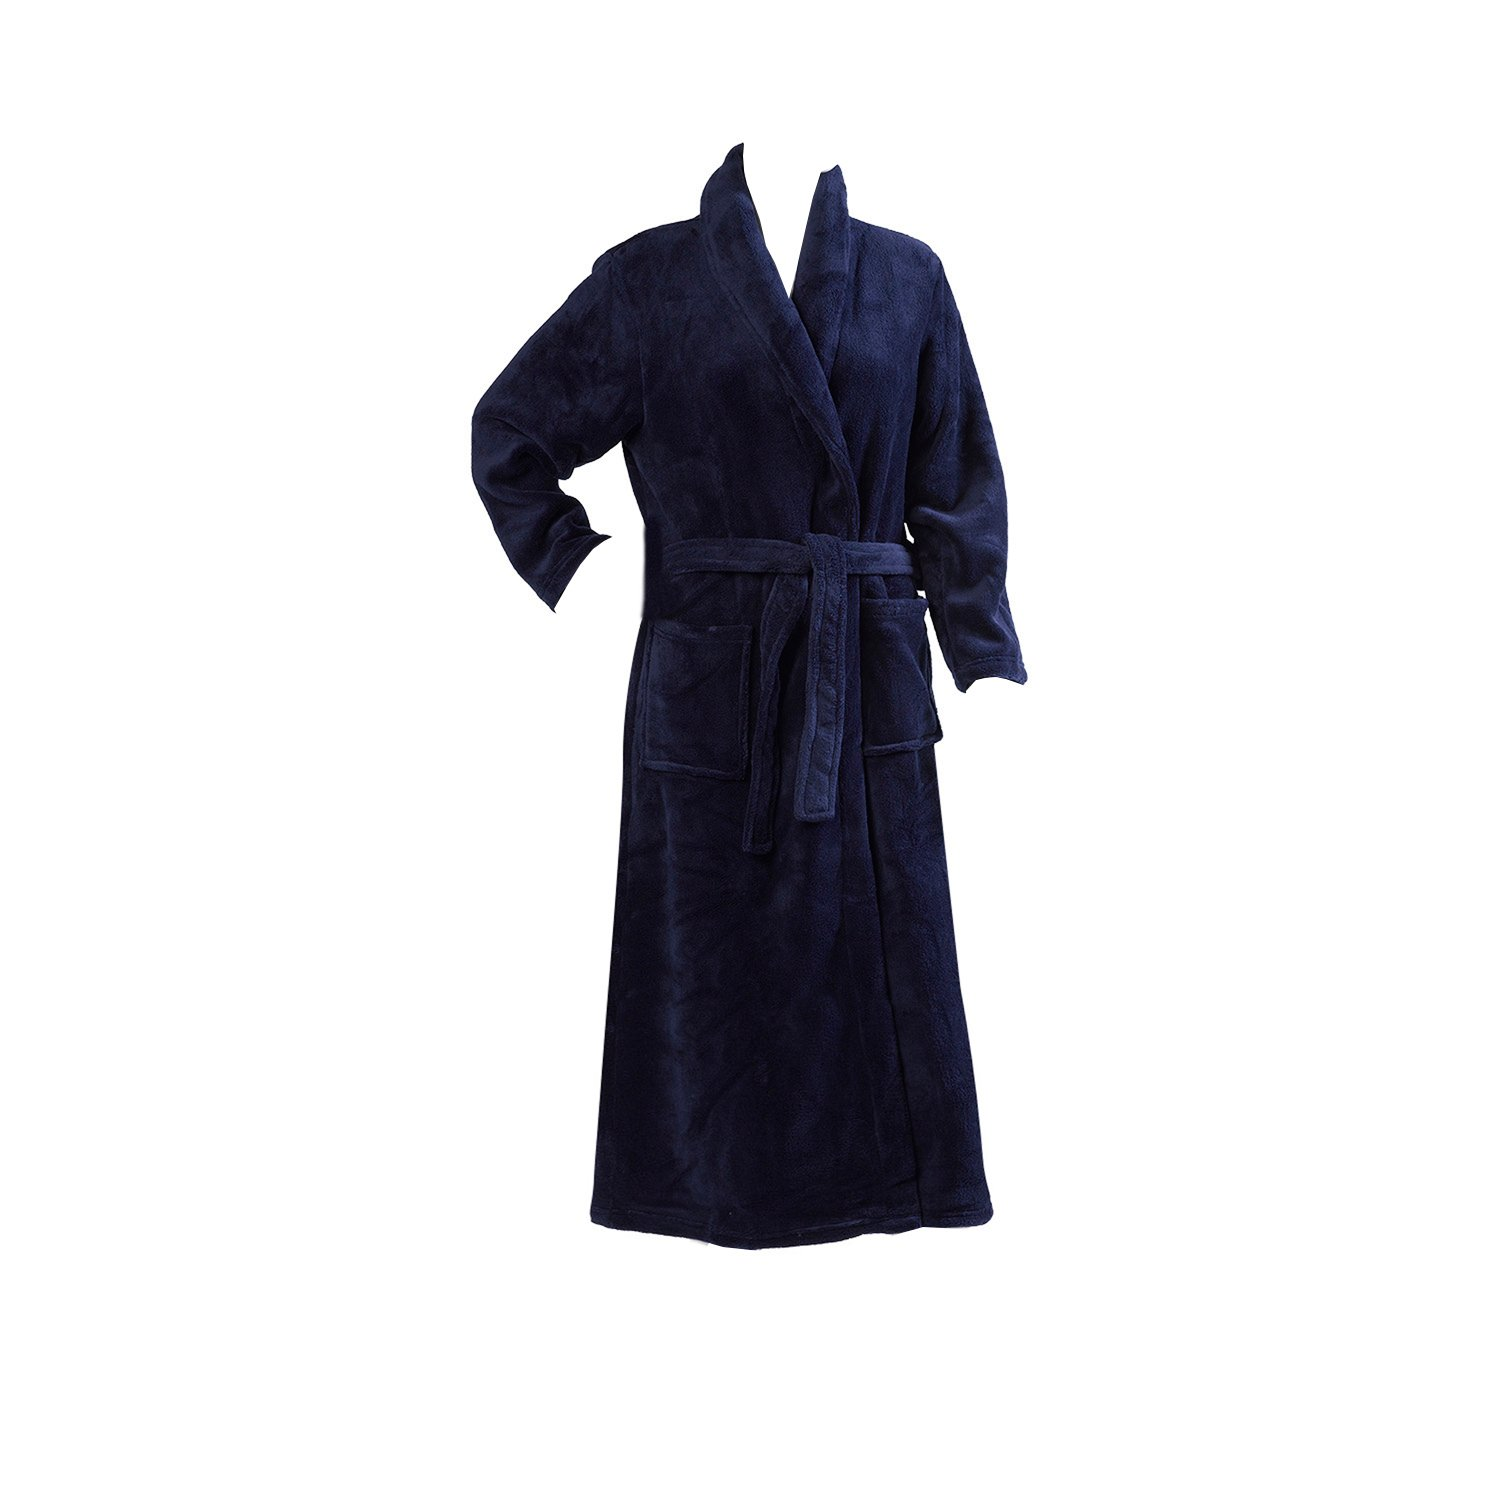 39796f7cd529f Slenderella Ladies Luxurious Soft Fleece Long Dressing Gown Wrap Around  with Pockets XL (Navy Blue): Amazon.co.uk: Clothing